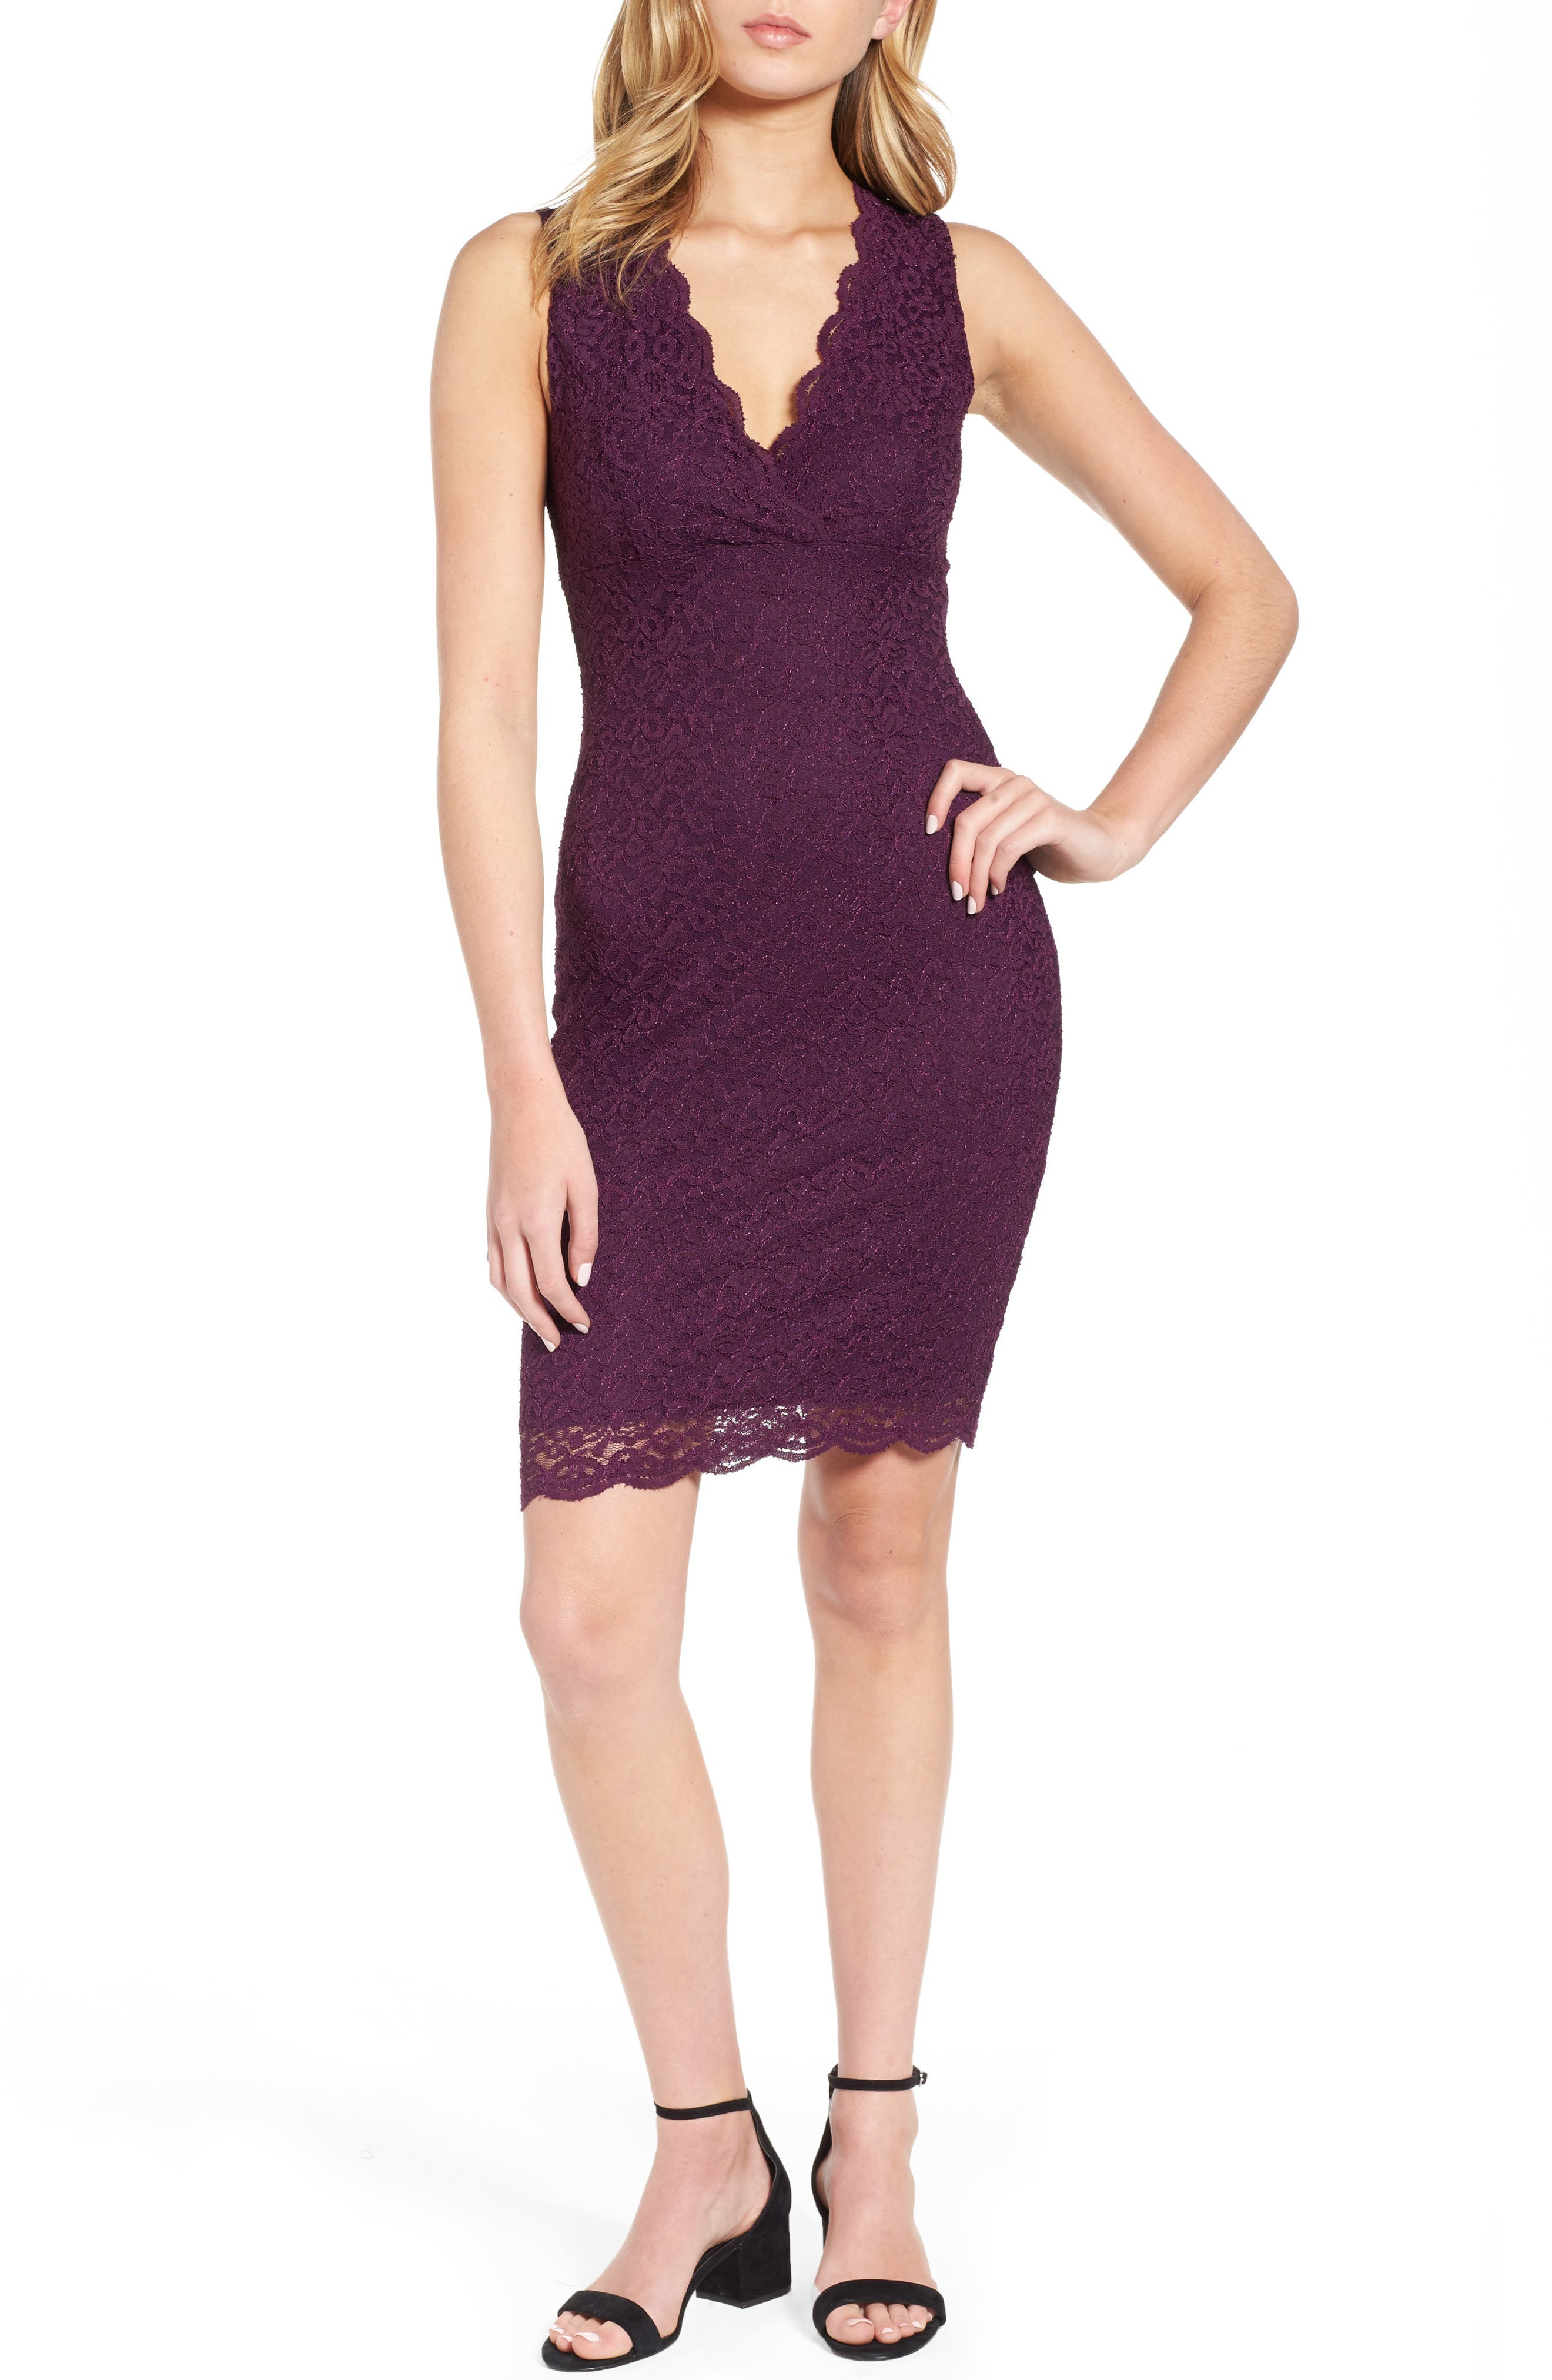 Main Image - Soprano Lace Body Con Dress